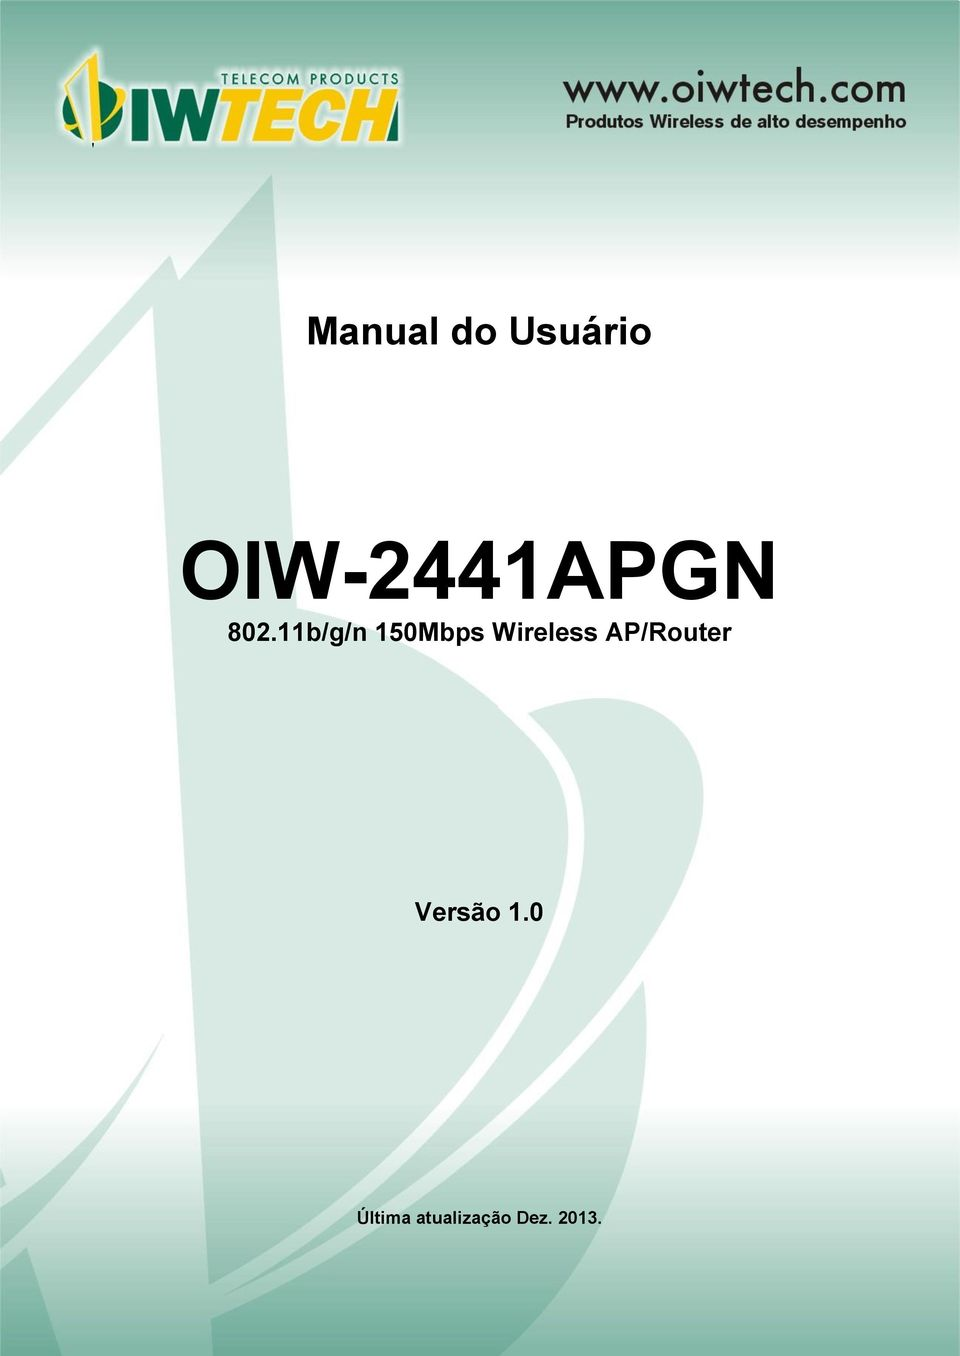 11b/g/n 150Mbps Wireless